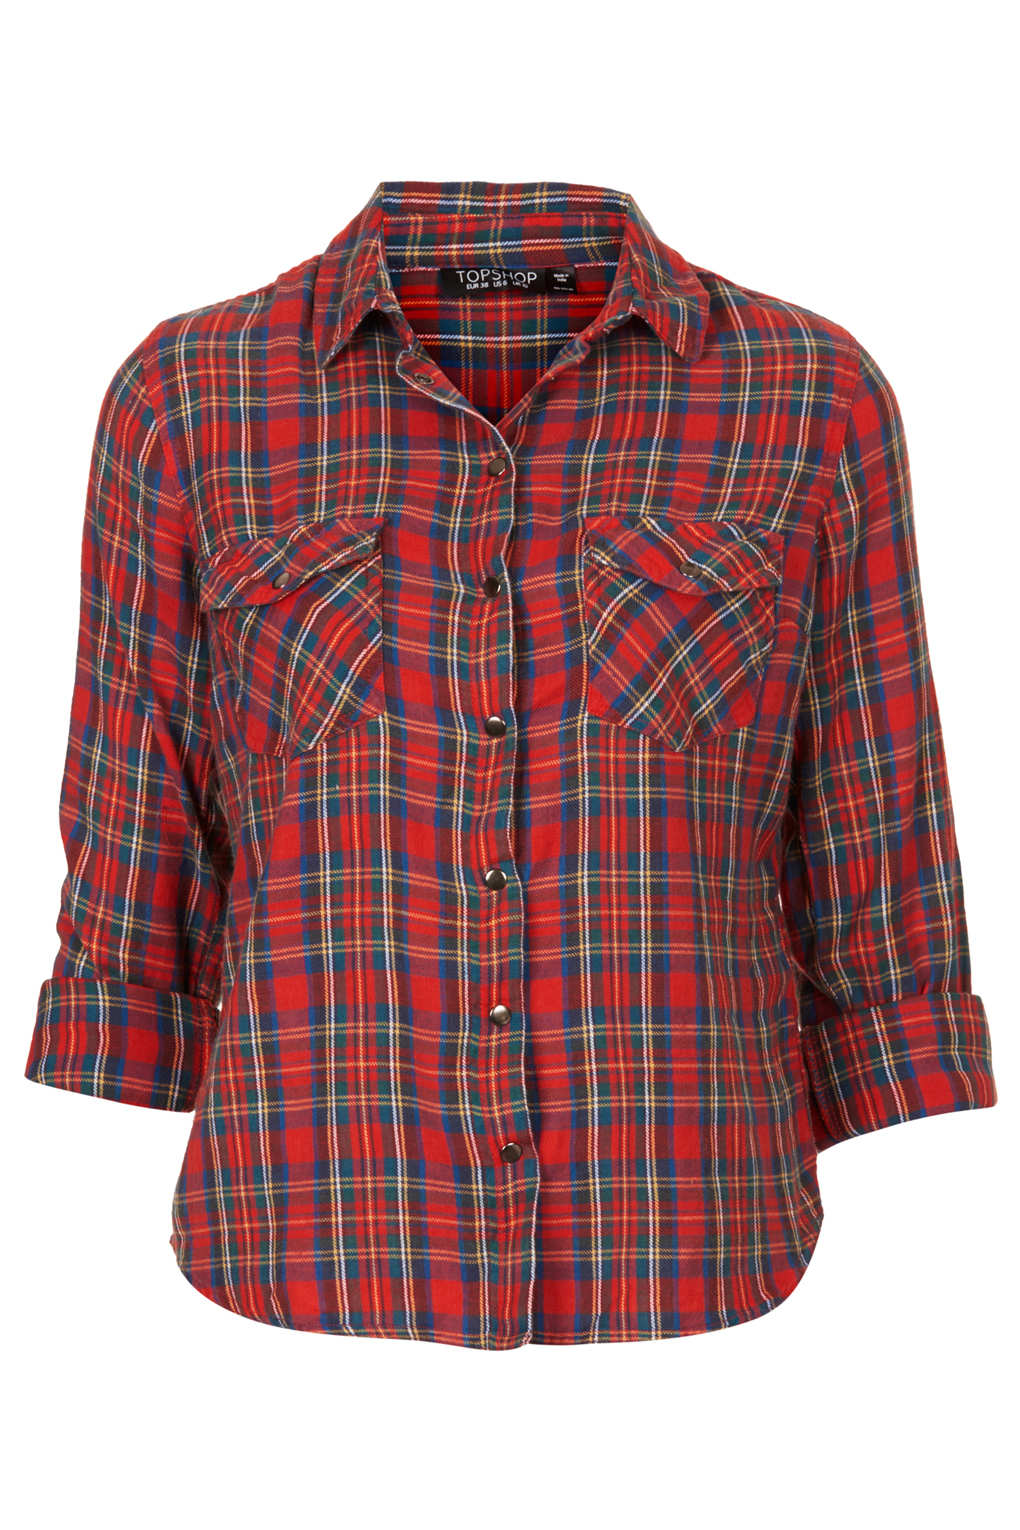 Topshop tartan check shirt in red lyst for Womens denim shirts topshop